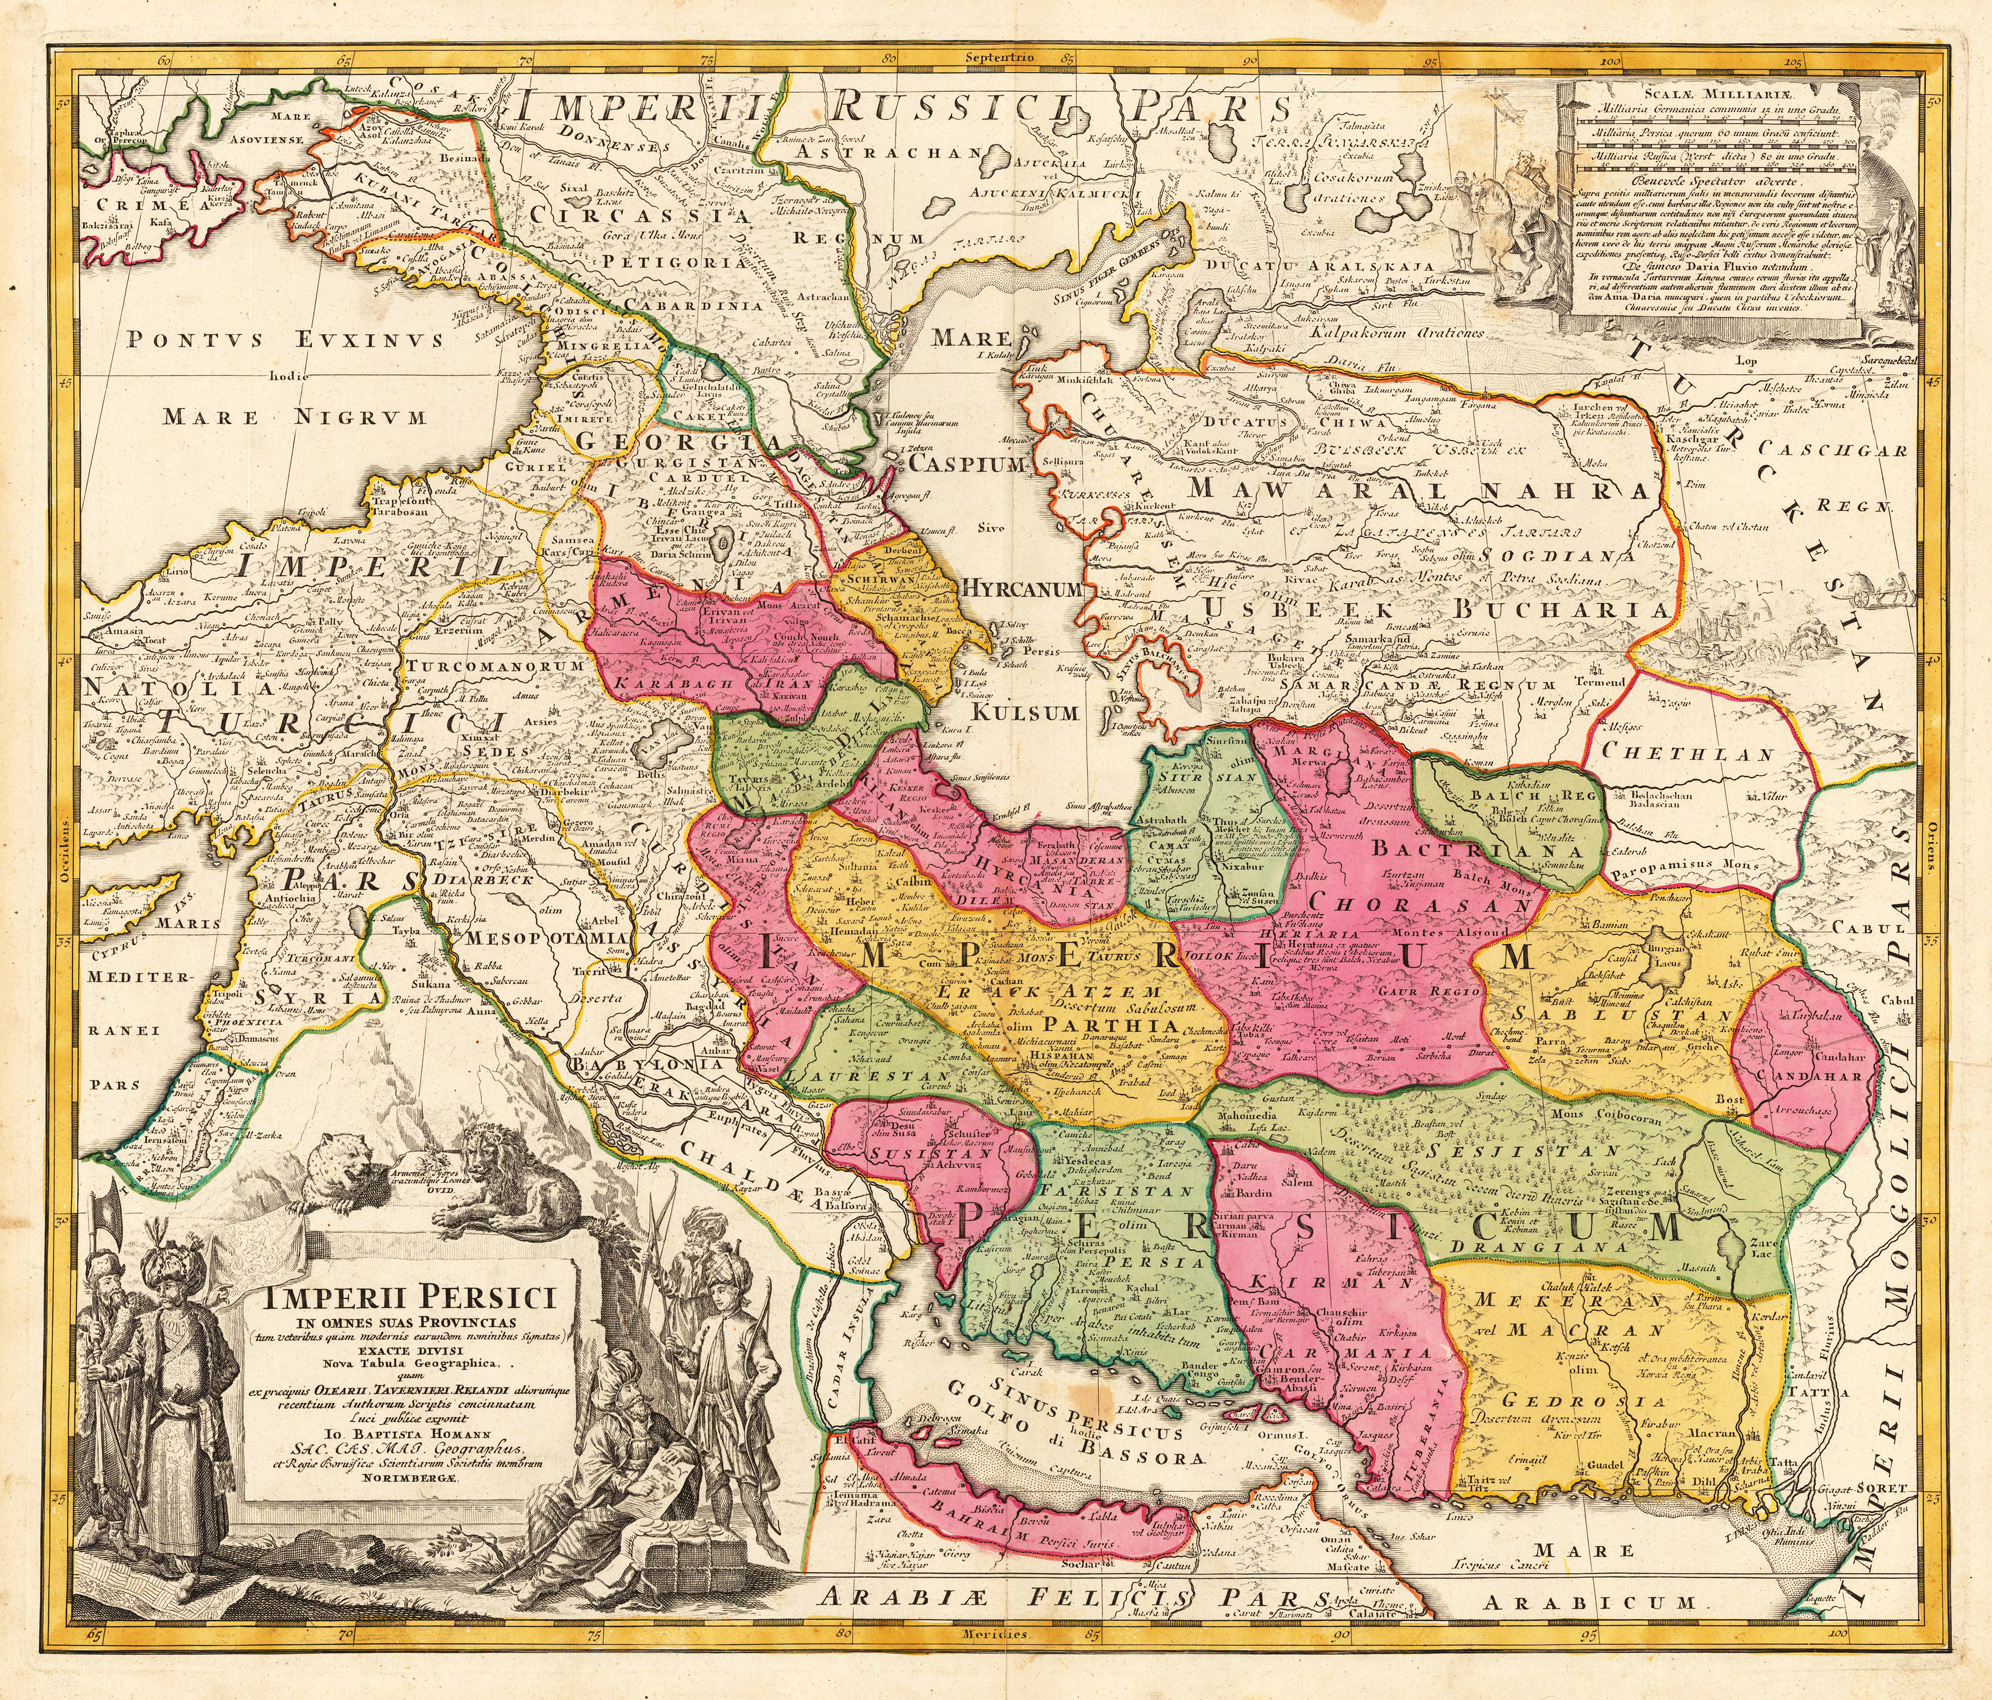 Atlas of Iran - Wikimedia Commons on map of ancient iran, map of ancient medina, map of ancient persepolis, map of ancient anatolia, map of ancient roman republic, map of ancient mesopotamia, map of ancient persia, map of ancient constantinople, map of ancient babylon,